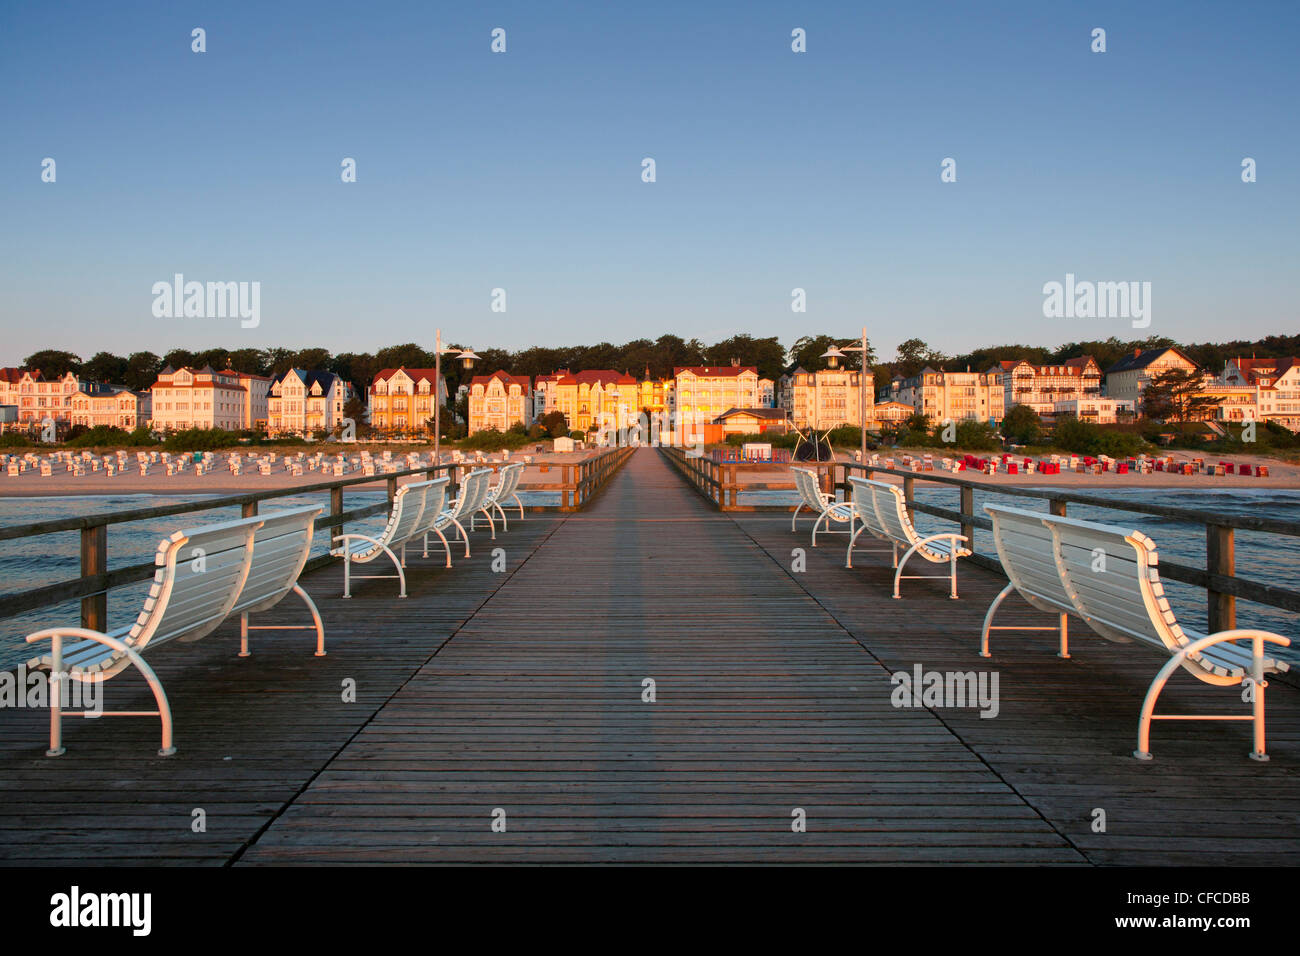 Benches on the pier, Bansin seaside resort, Usedom island, Baltic Sea, Mecklenburg-West Pomerania, Germany - Stock Image